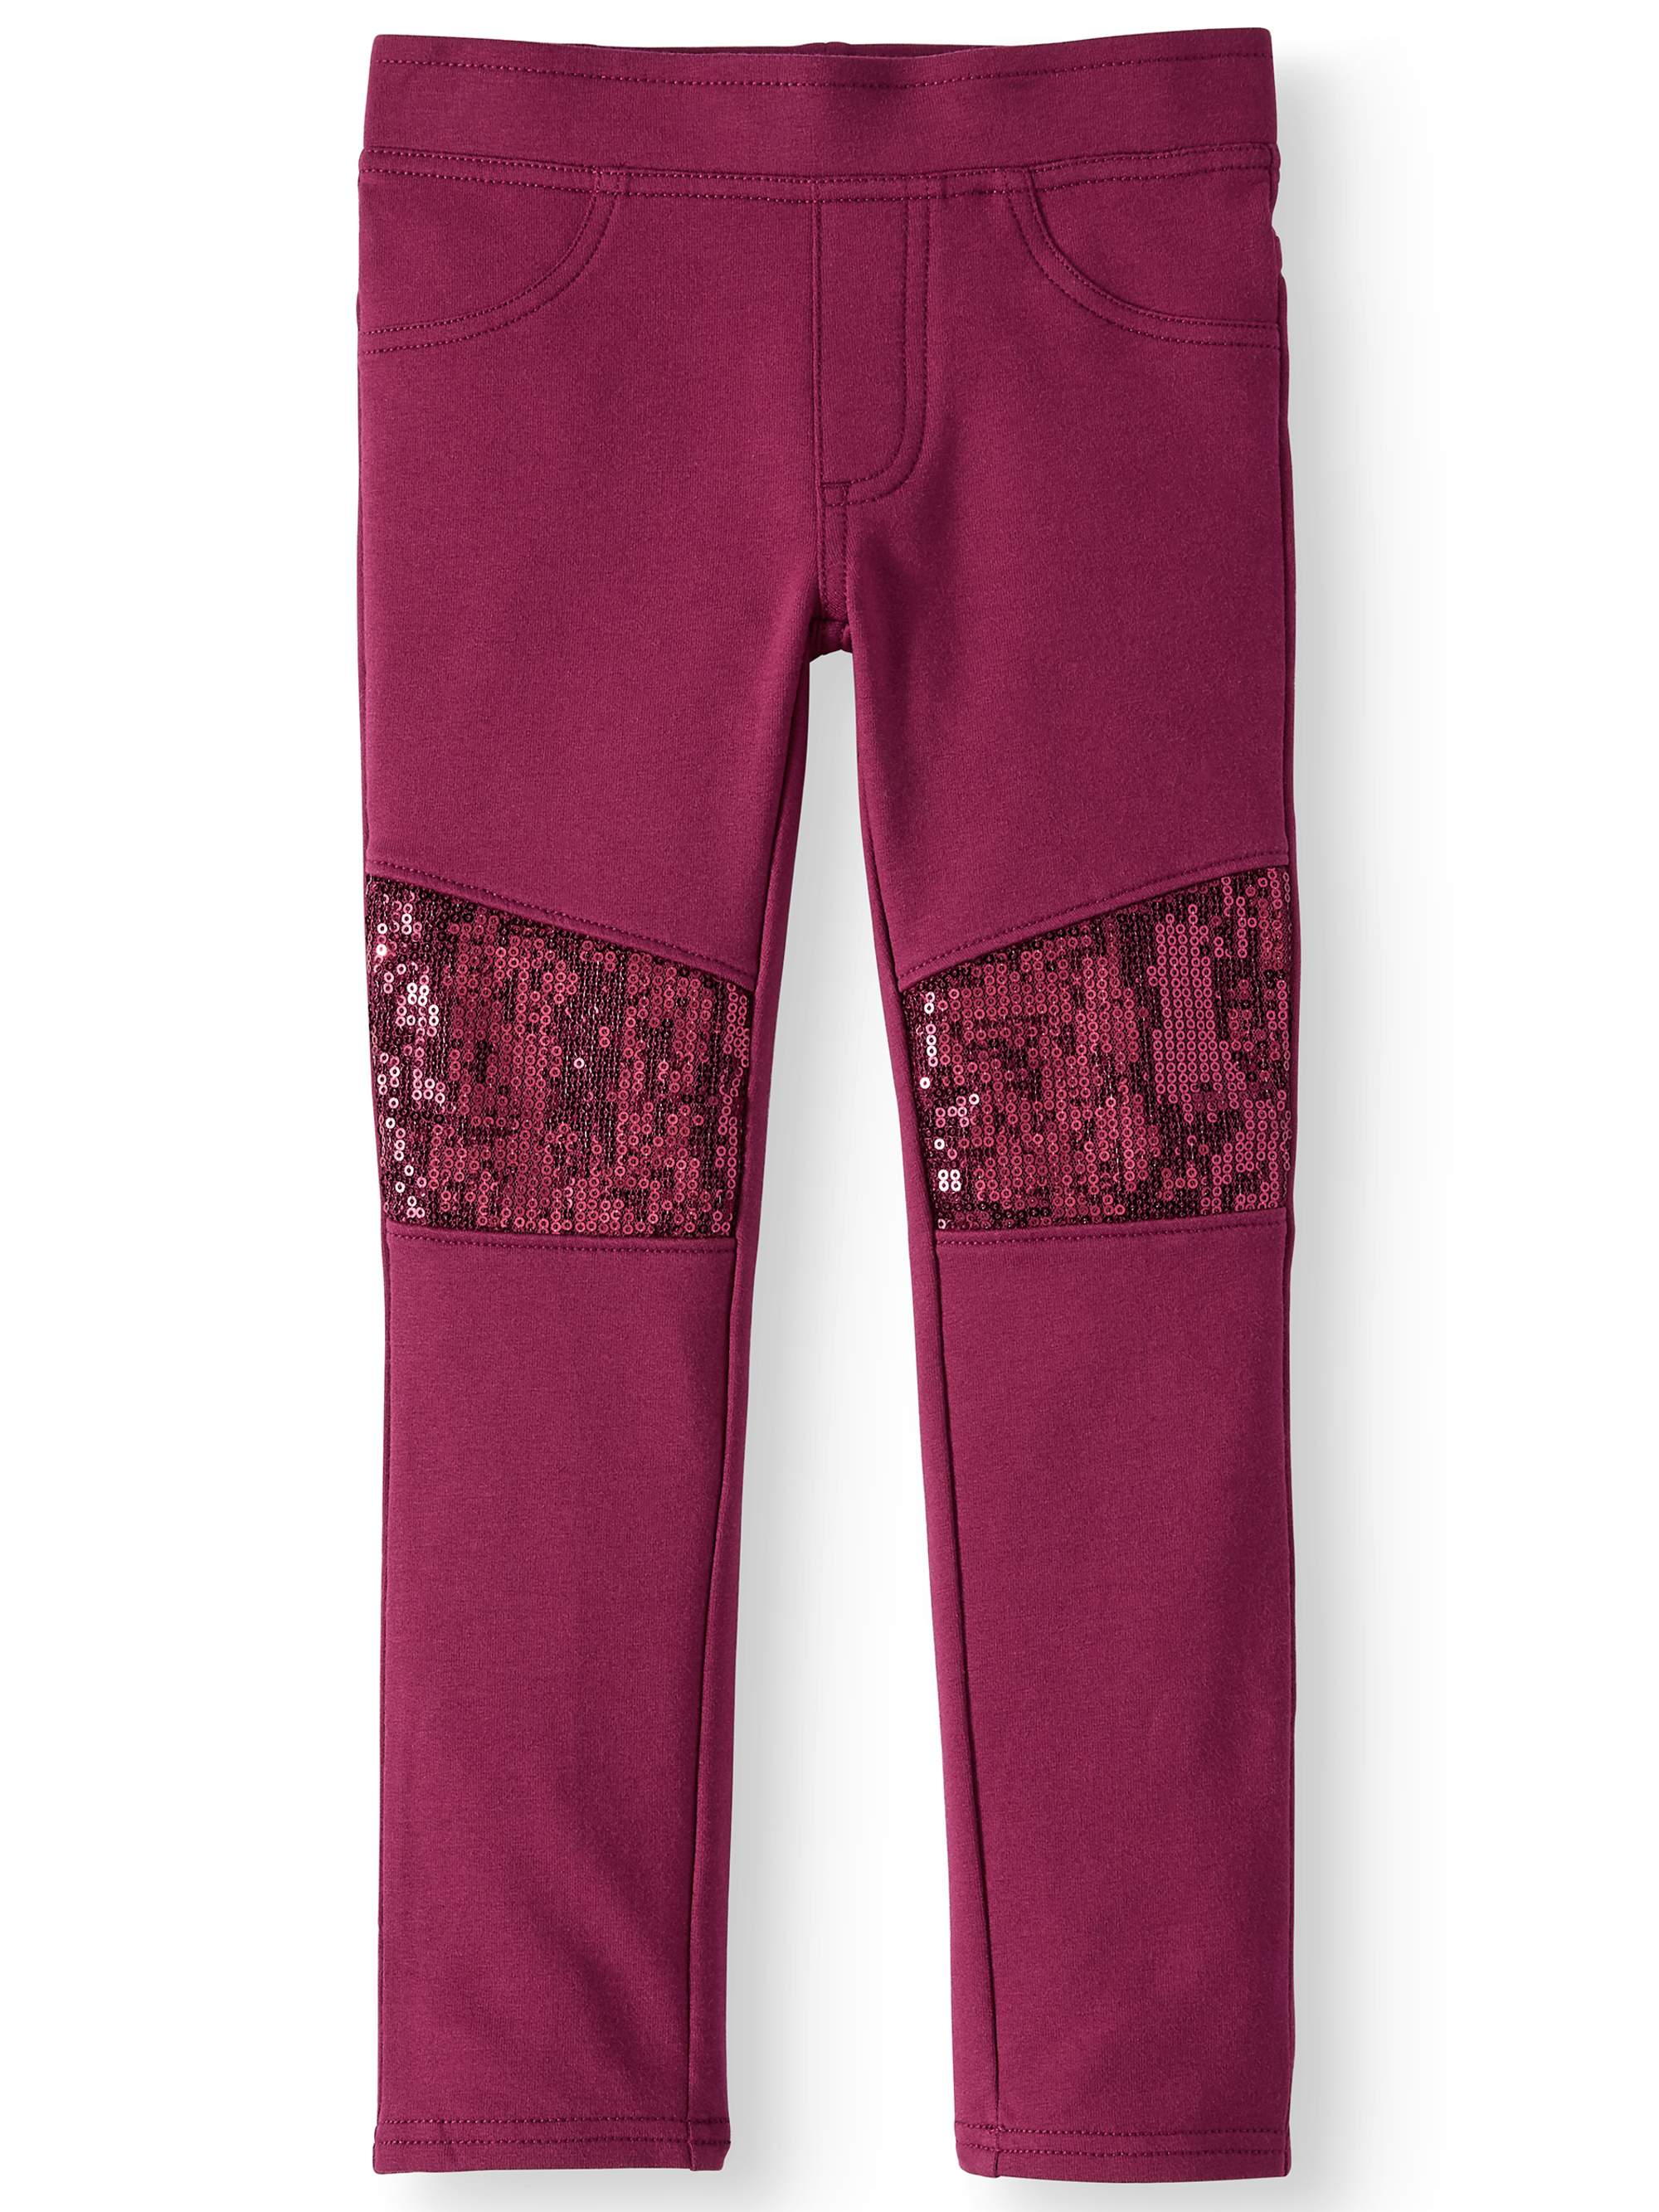 Pull On Jeggings With Sequin Knee Patches (Little Girls & Big Girls)